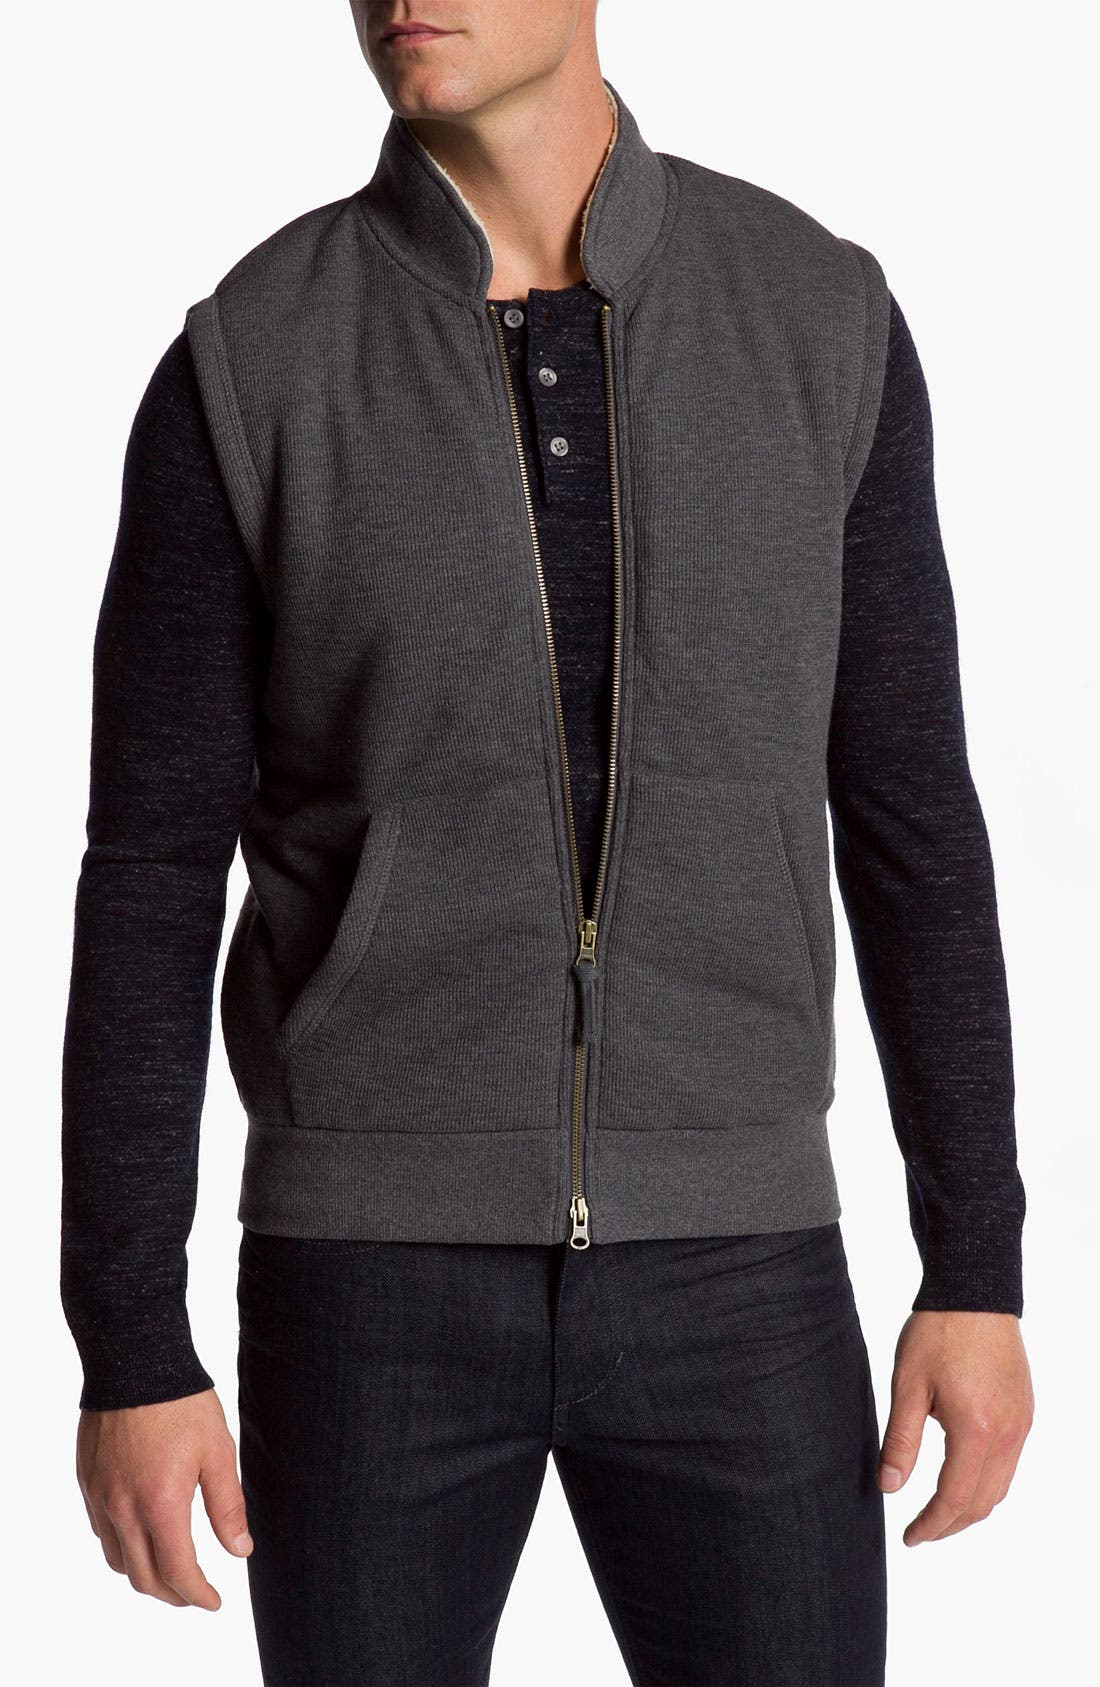 Main Image - Vince Slubbed Zip Vest with Faux Shearling Lining